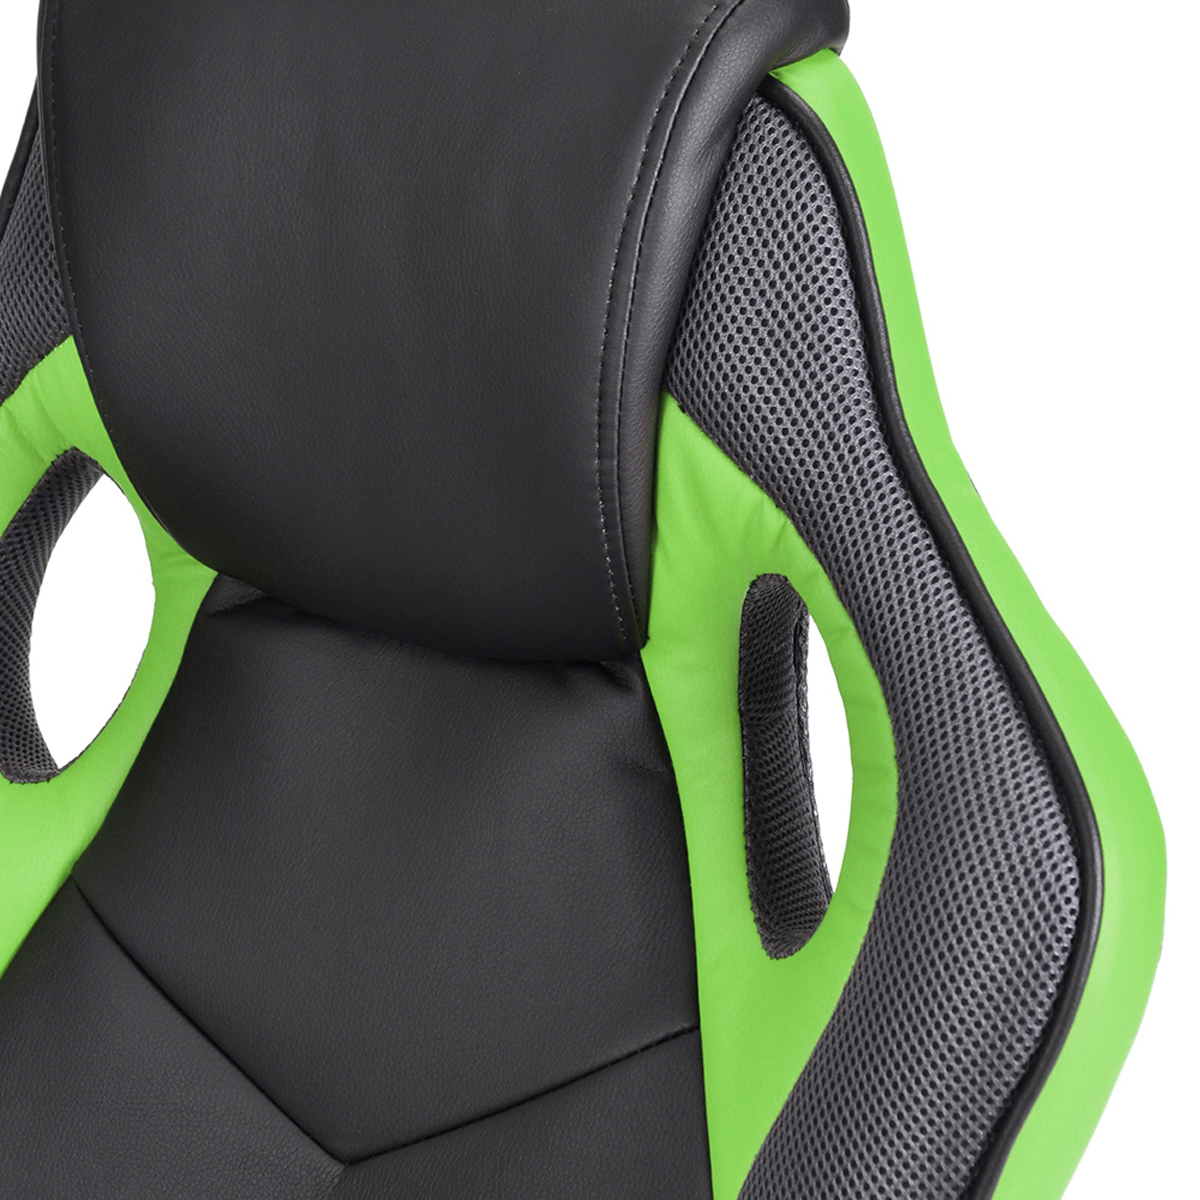 thumbnail 16 - Gaming Racing Chair Office High Back Ergonomic Computer Desk Swivel PU Leather